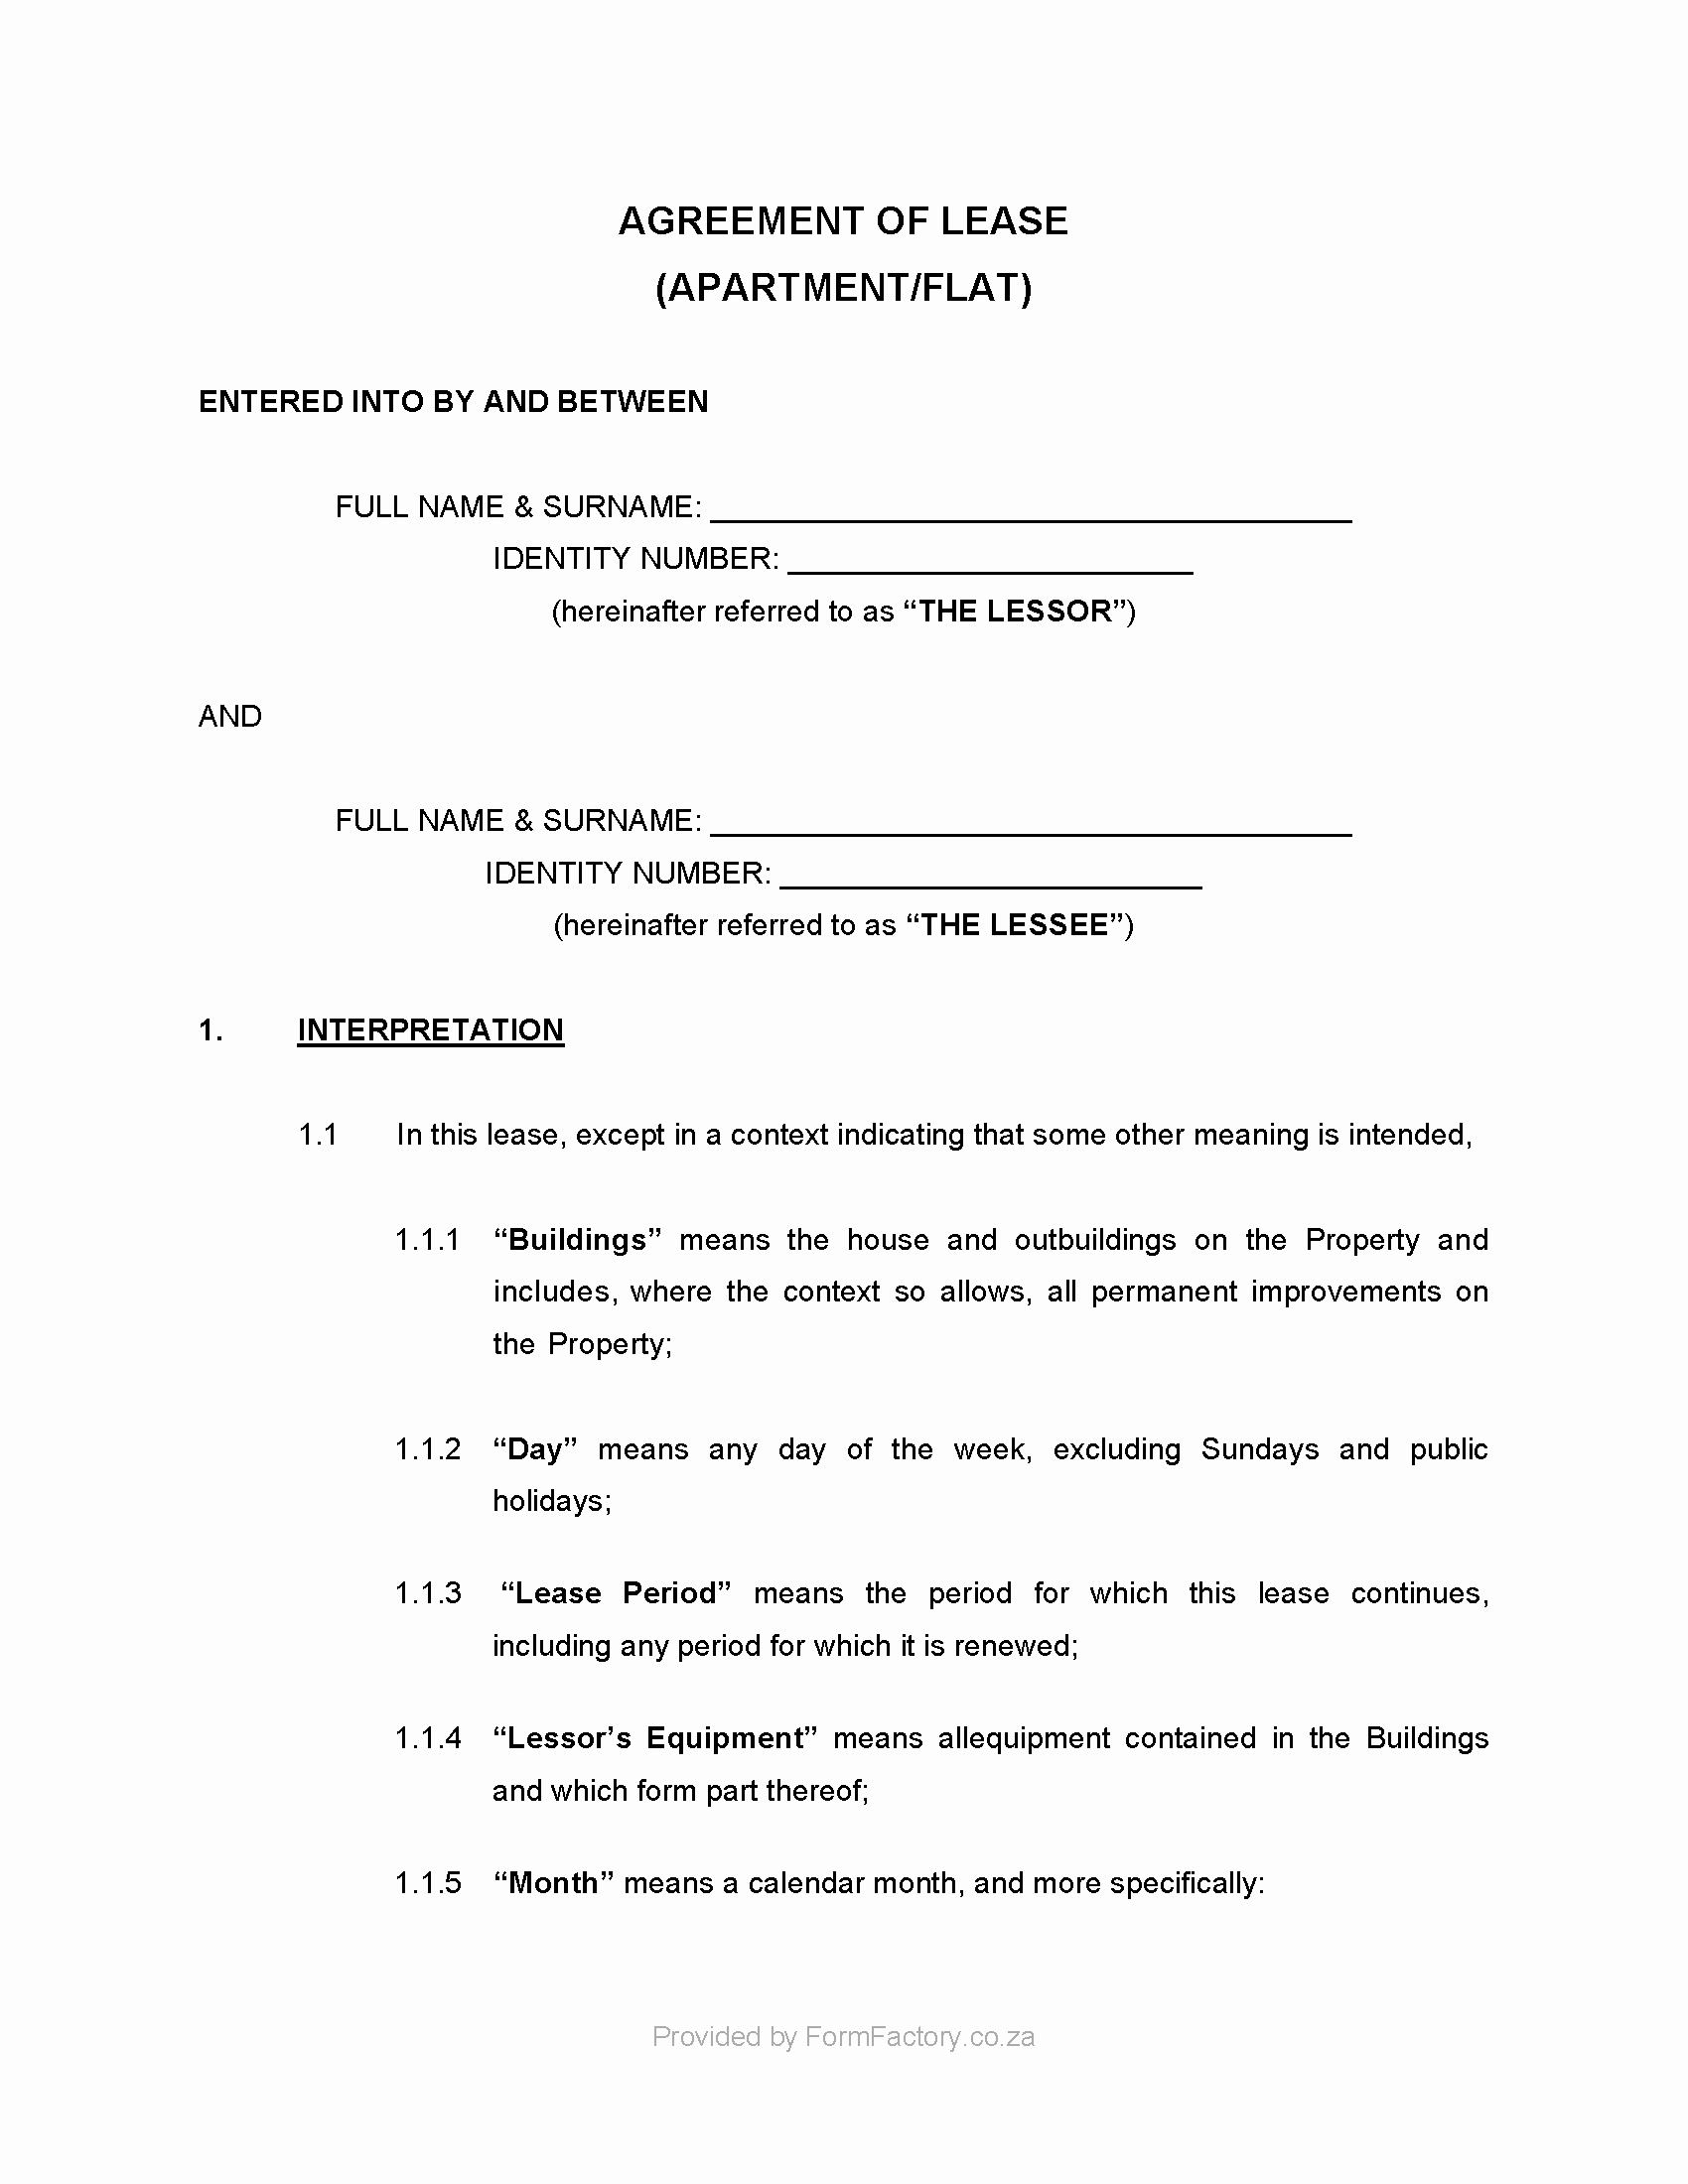 Download Residential Lease Agreement Template formfactory